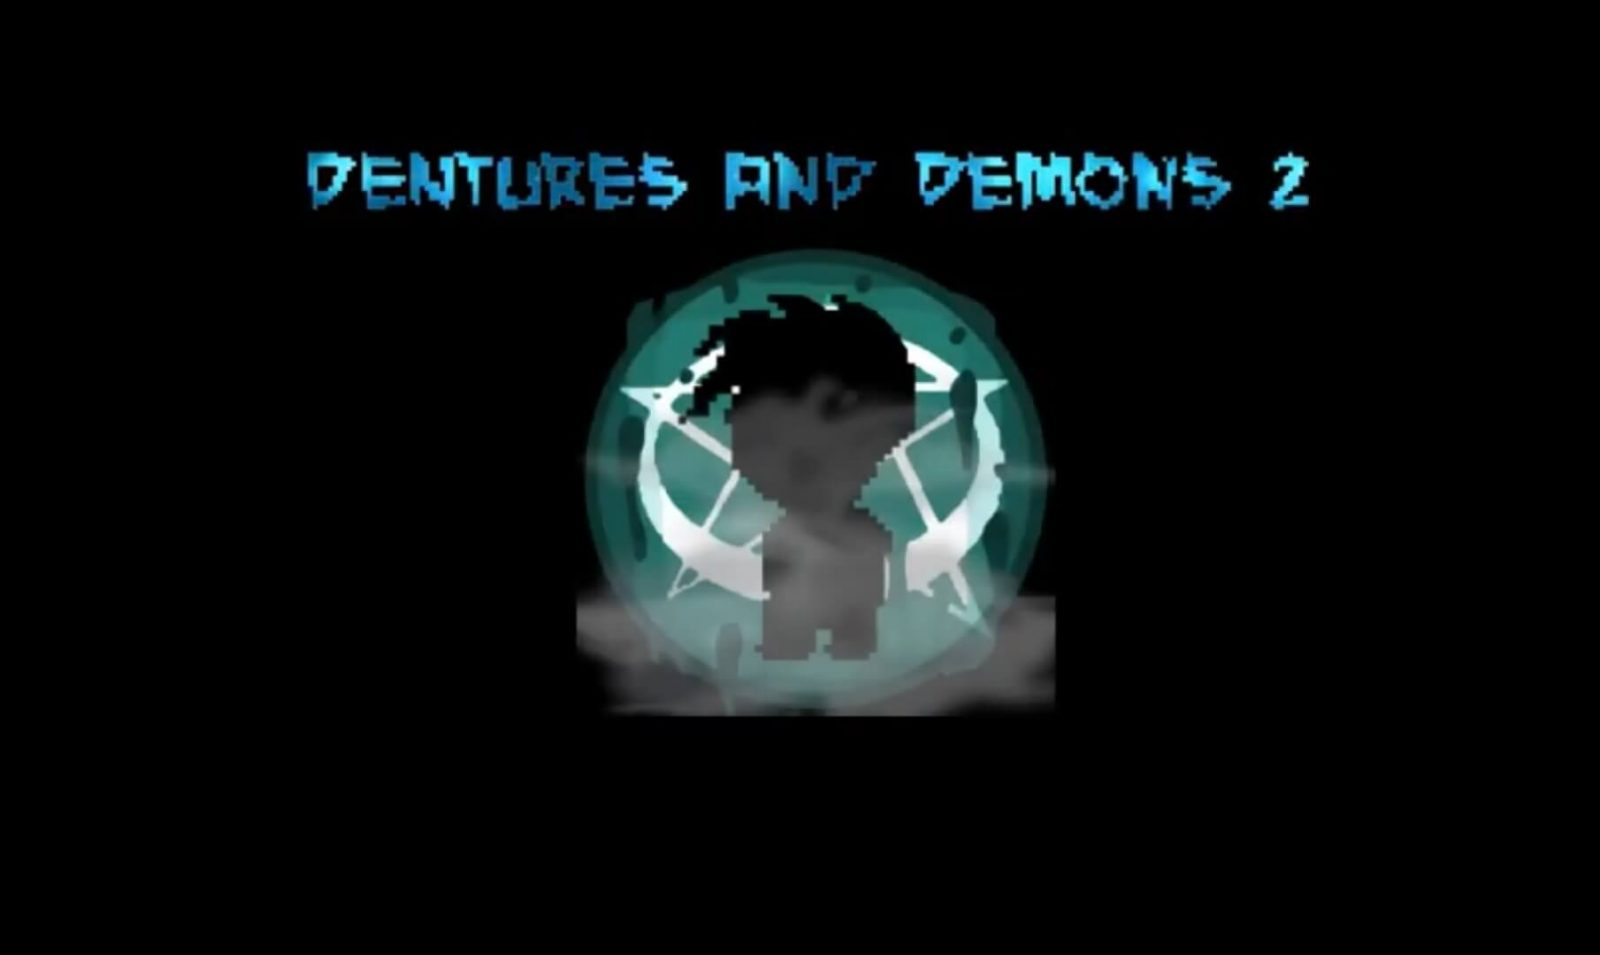 Dentures and Demons 2